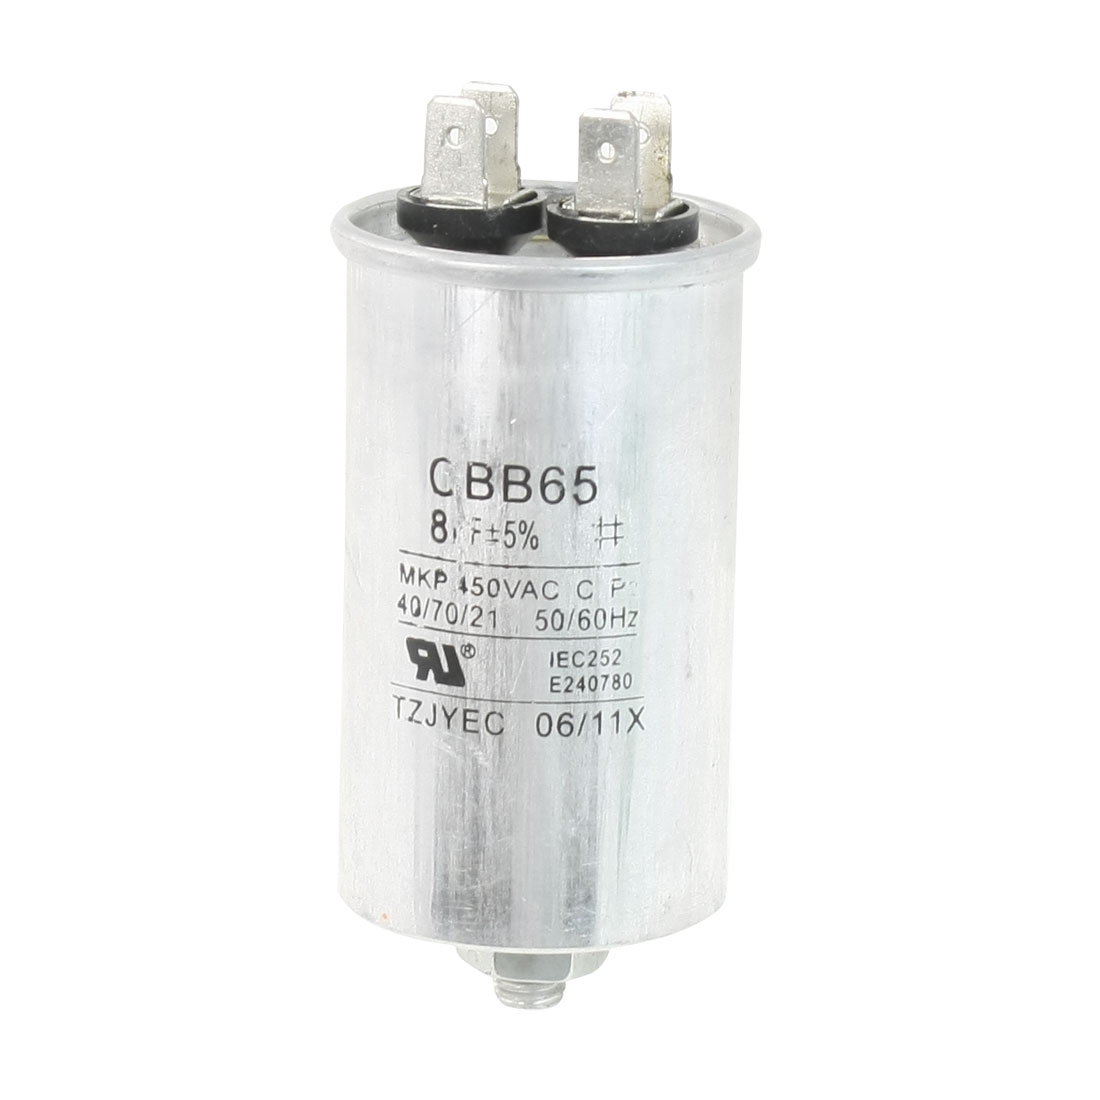 Air Conditioner AC 450V 8uF Cylindrical Motor Capacitor CBB65